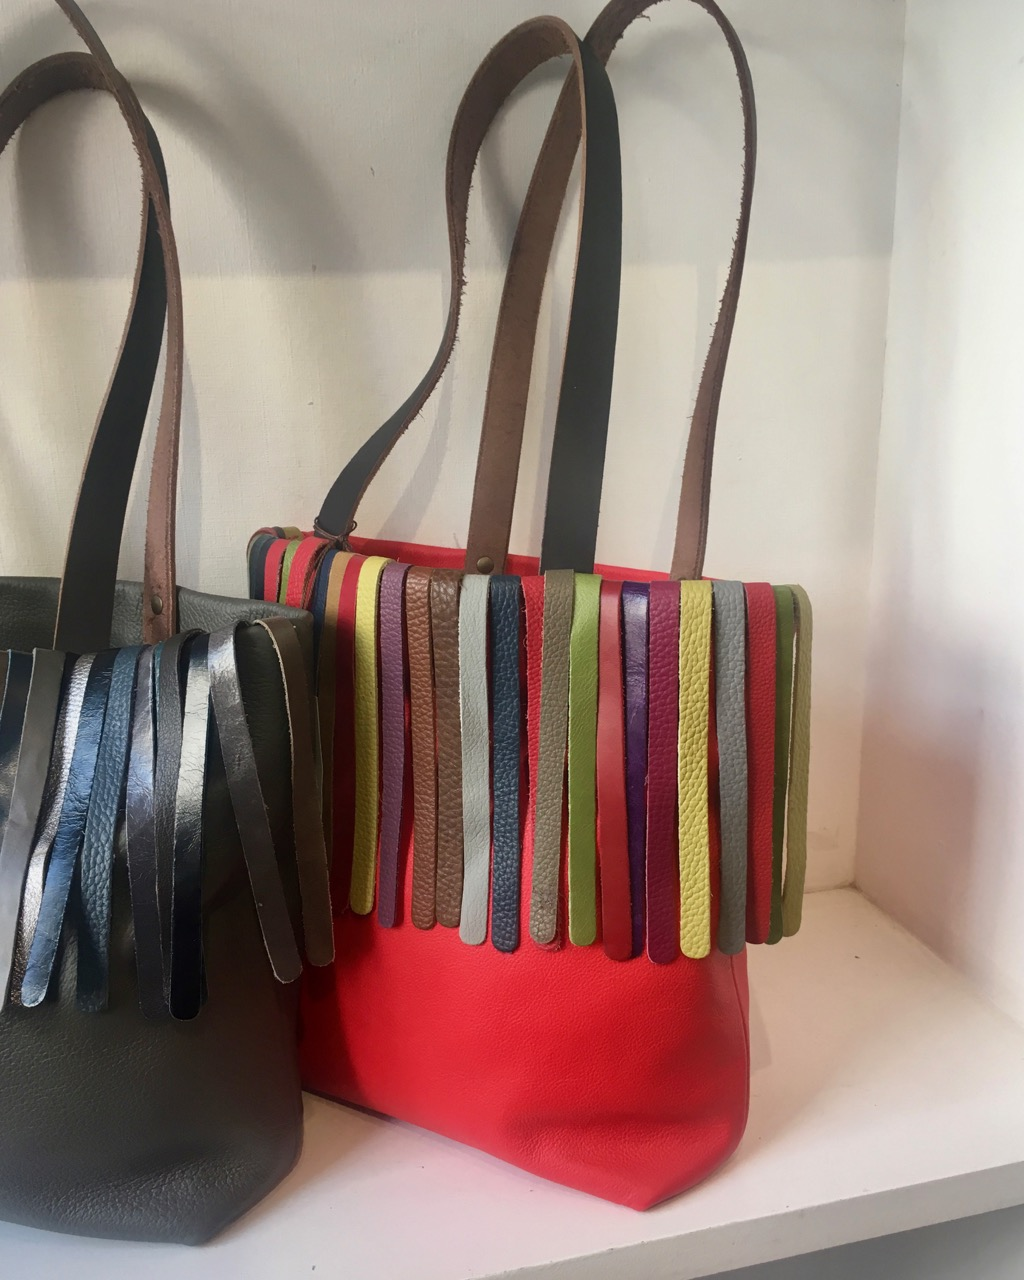 fringed leather totes